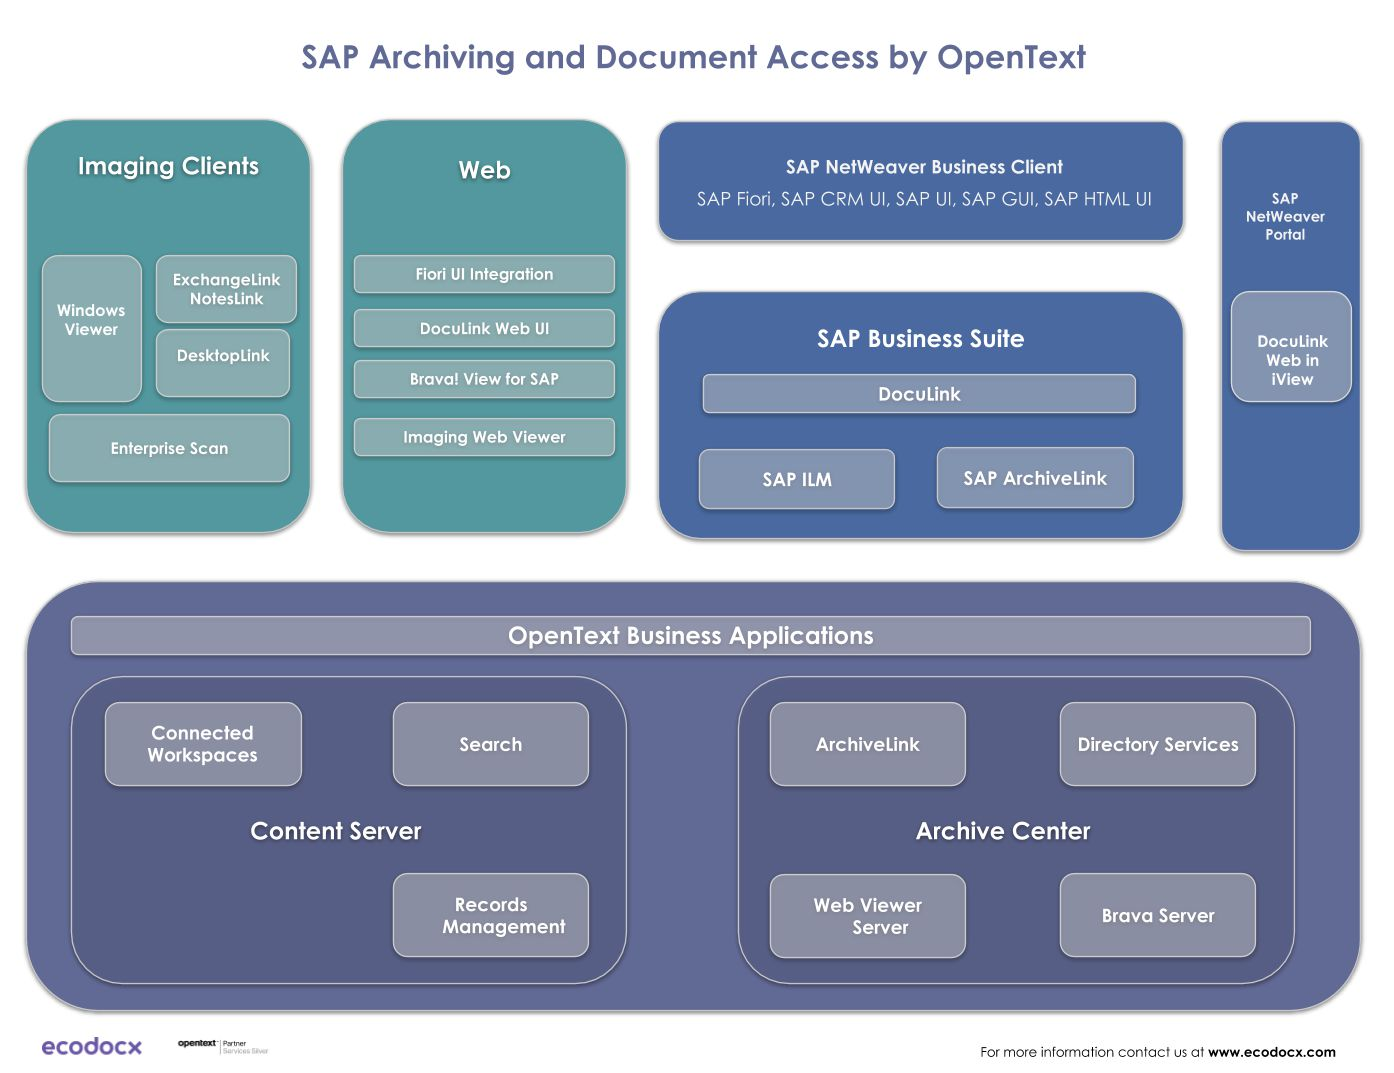 opentext archiving and document access solution architecture conmponents